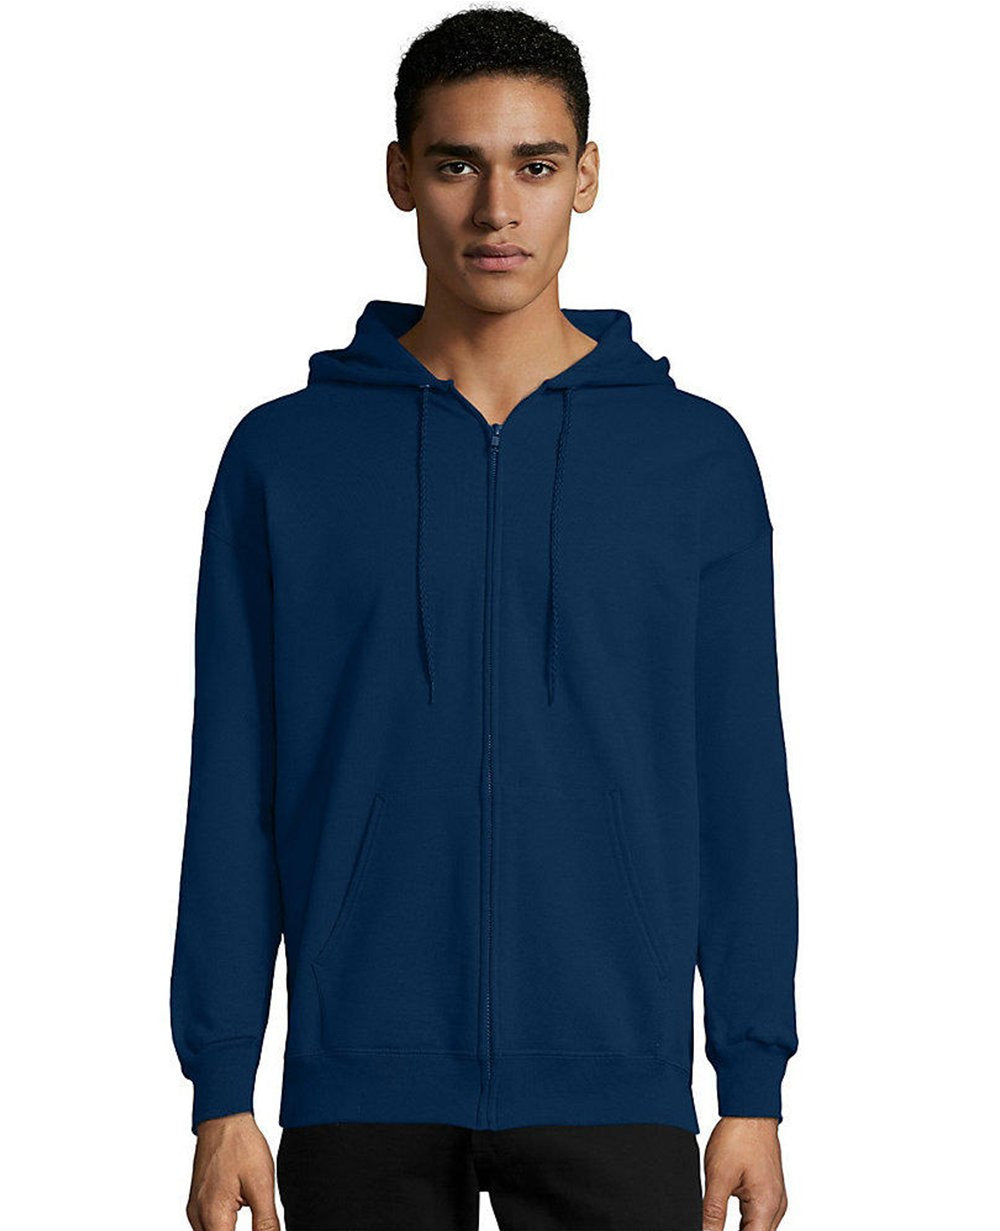 Zip-up Hoodie in Navy